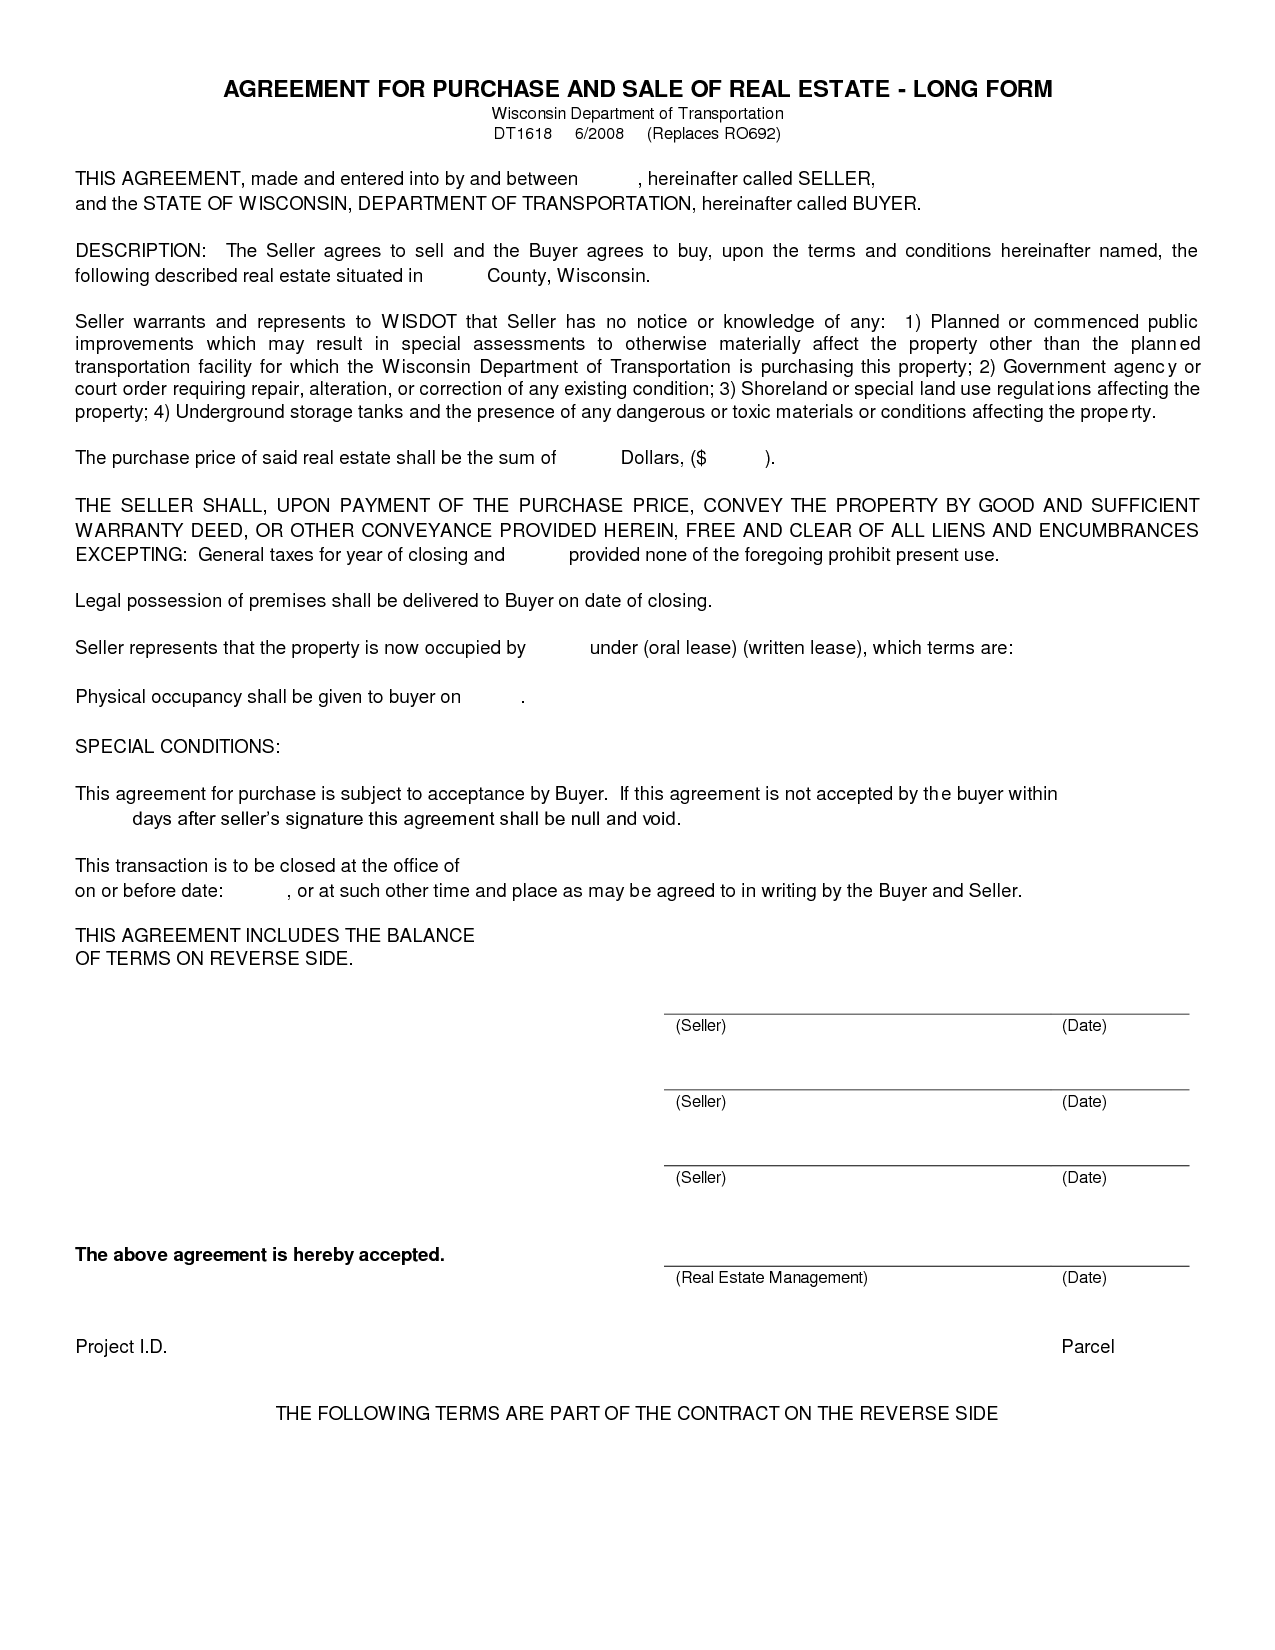 Free Blank Purchase Agreement Form Images   Agreement To Purchase Real  Estate Form Free  Blank Contract Template